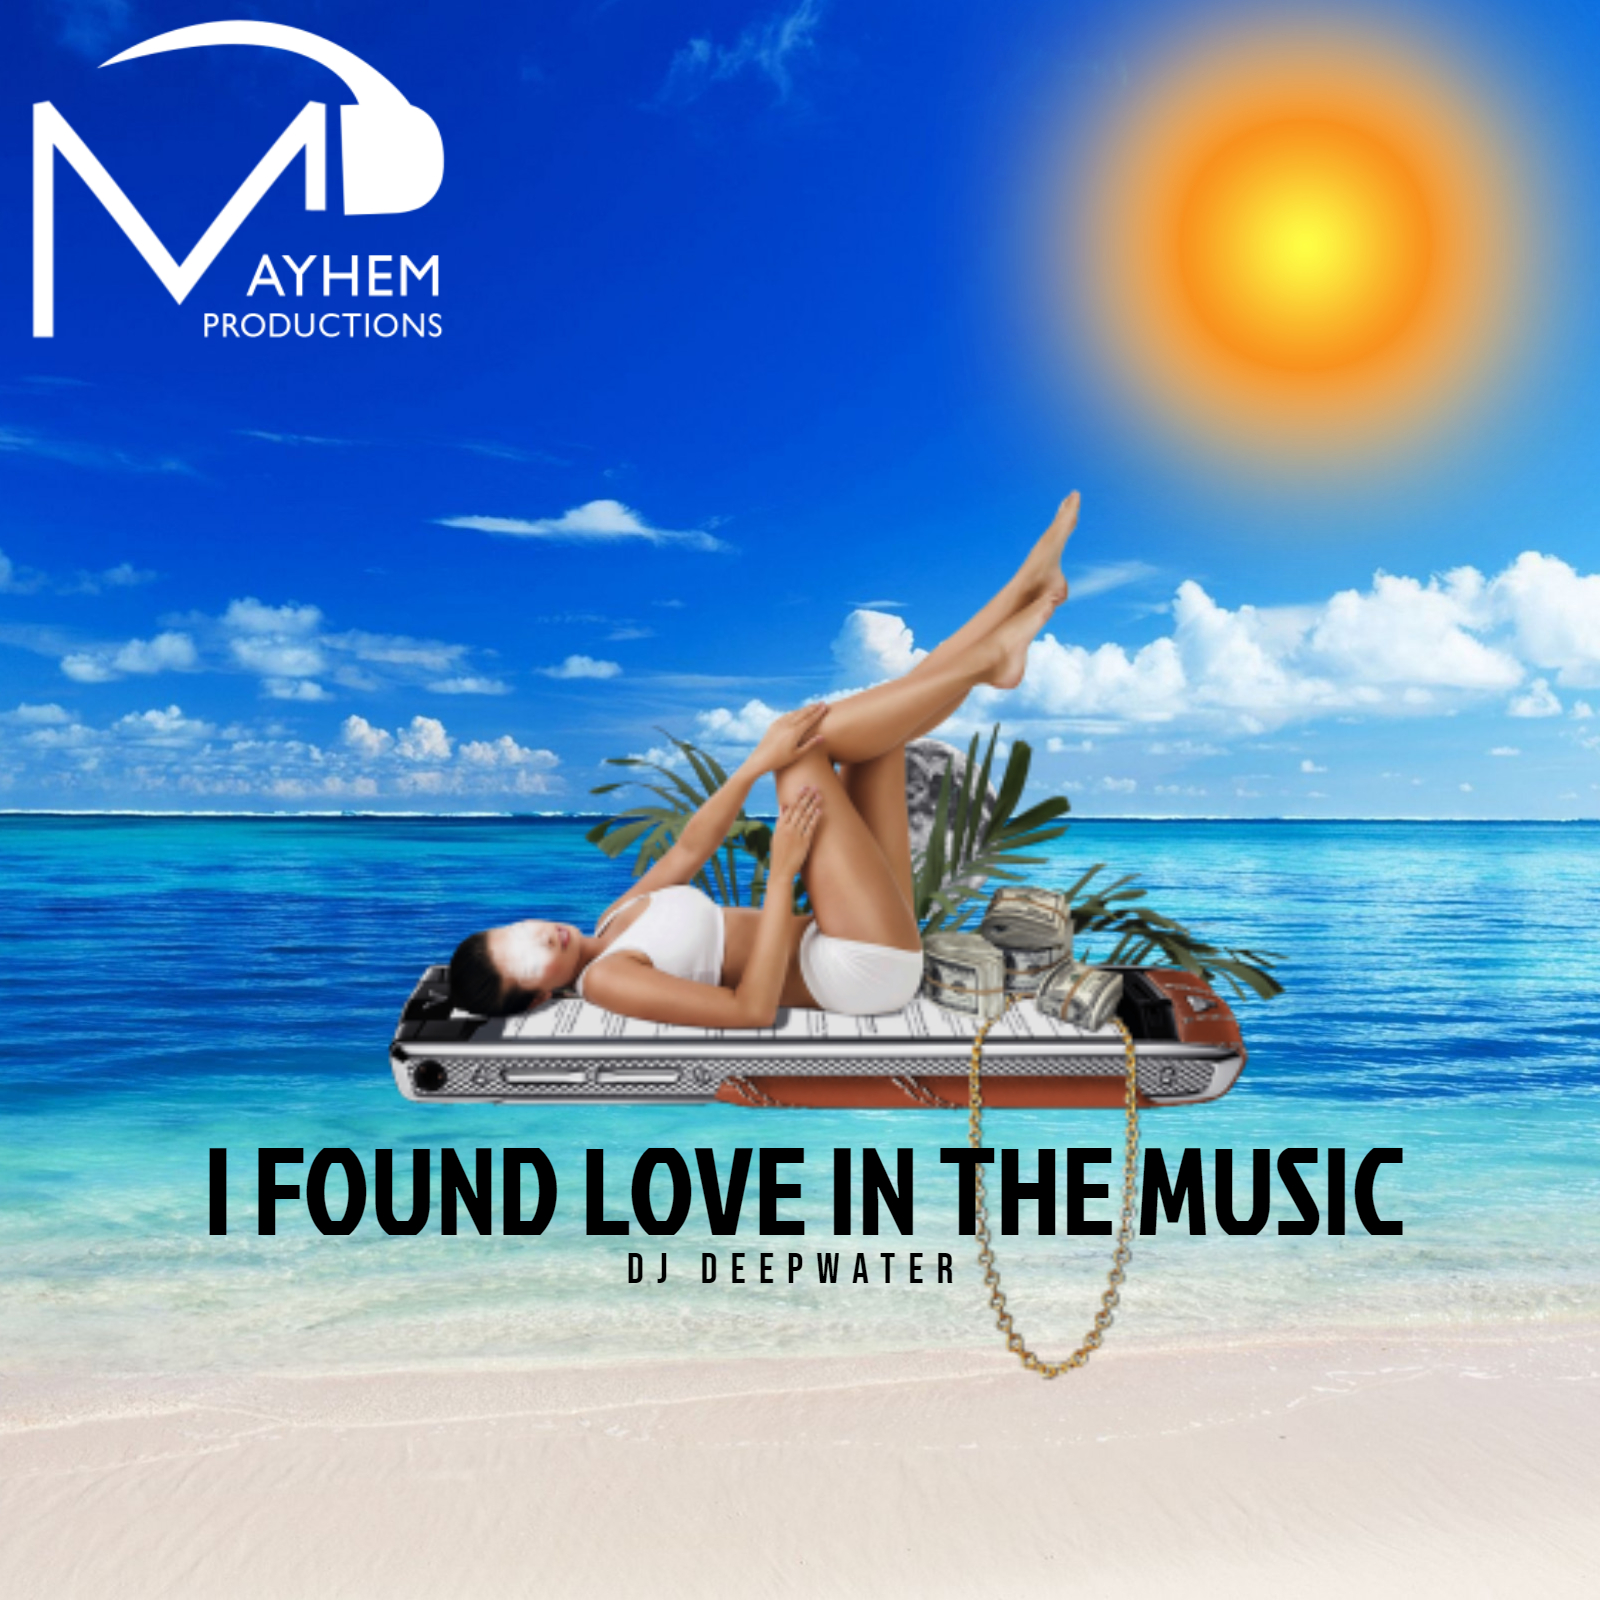 I found Love in the Music